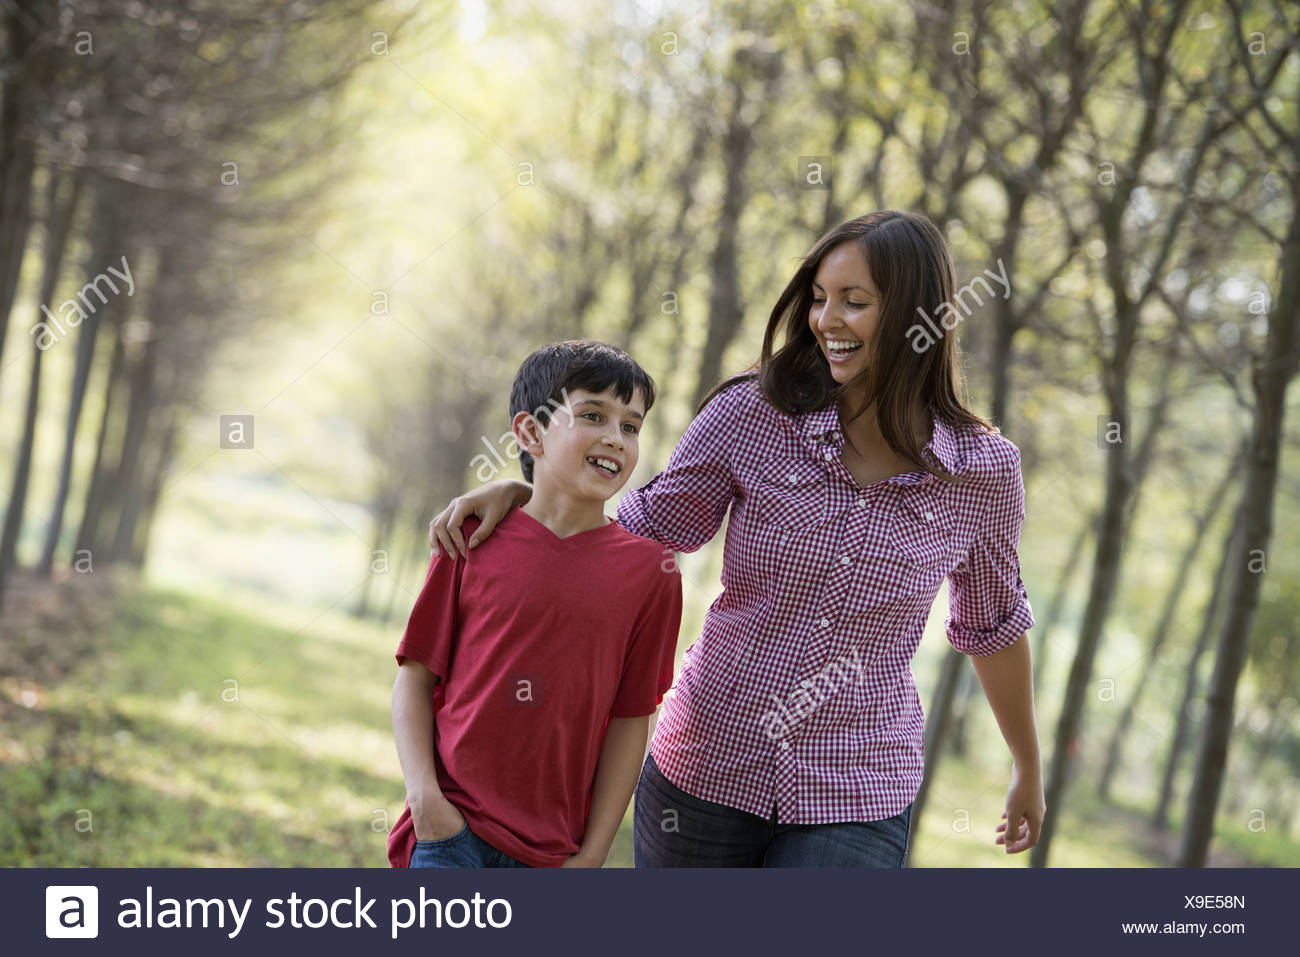 A woman and a child walking down an avenue of trees. - Stock Image